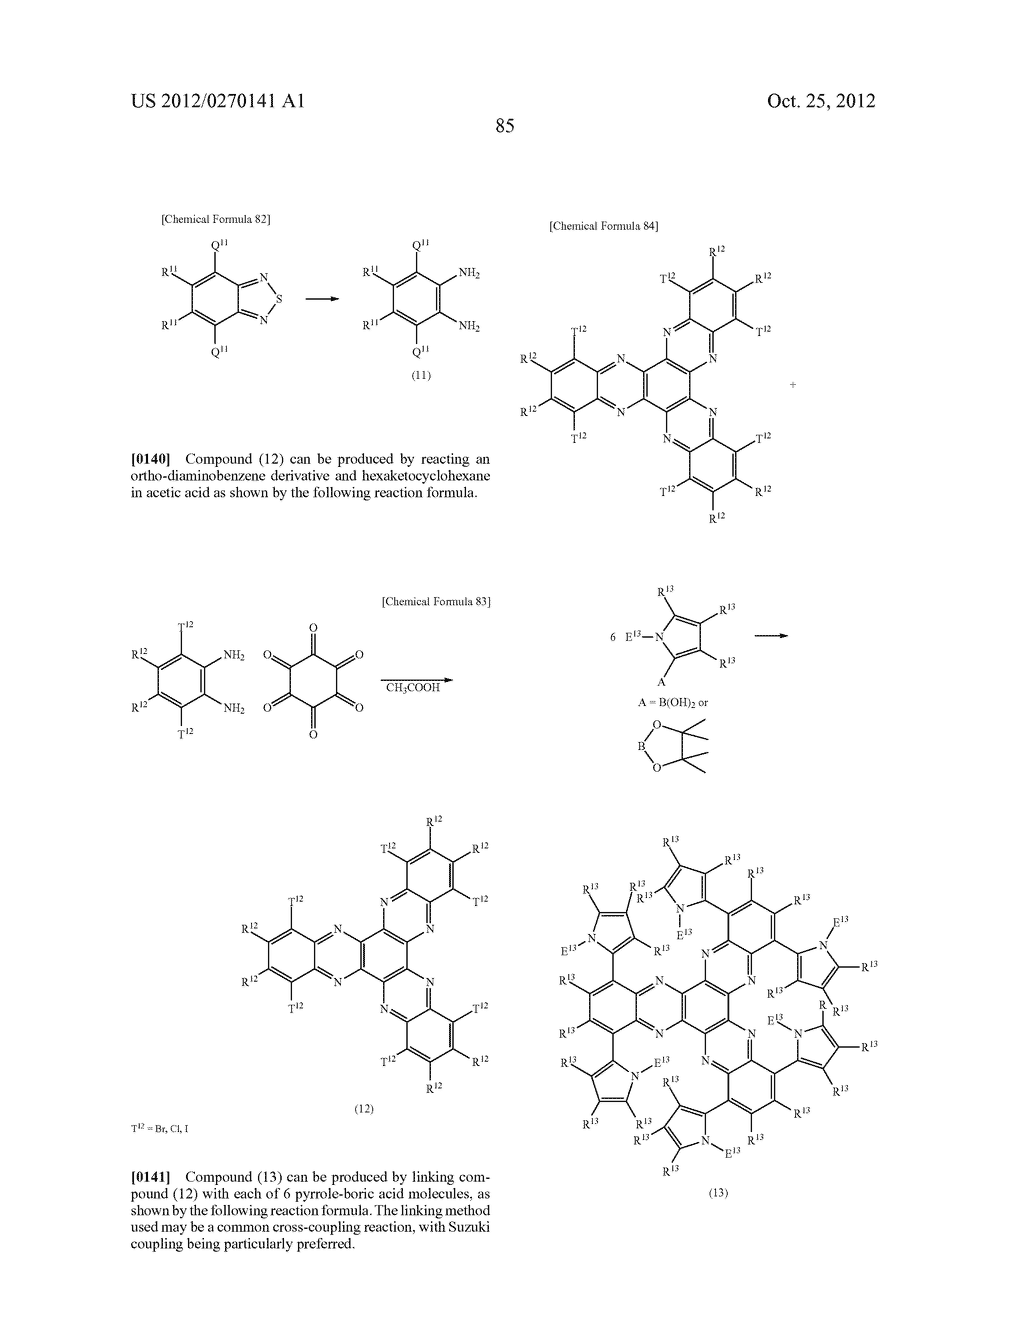 NITROGEN-CONTAINING AROMATIC COMPOUNDS AND METAL COMPLEXES - diagram, schematic, and image 86